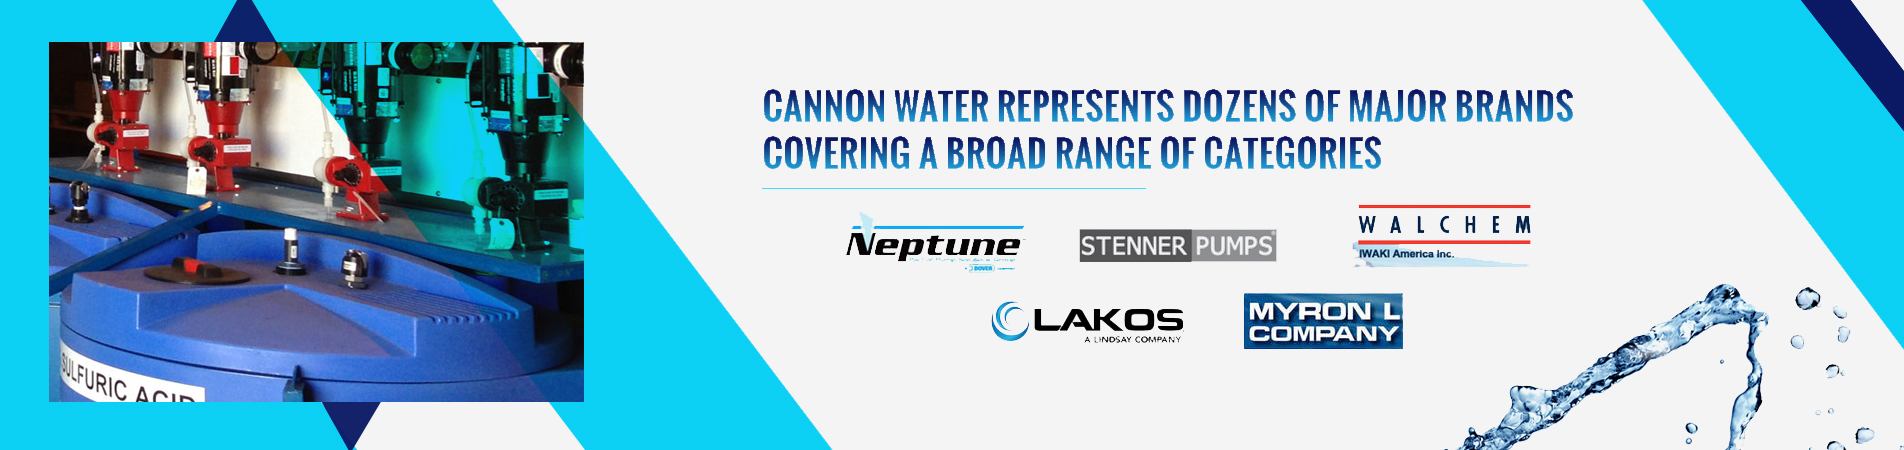 cannon water top brands